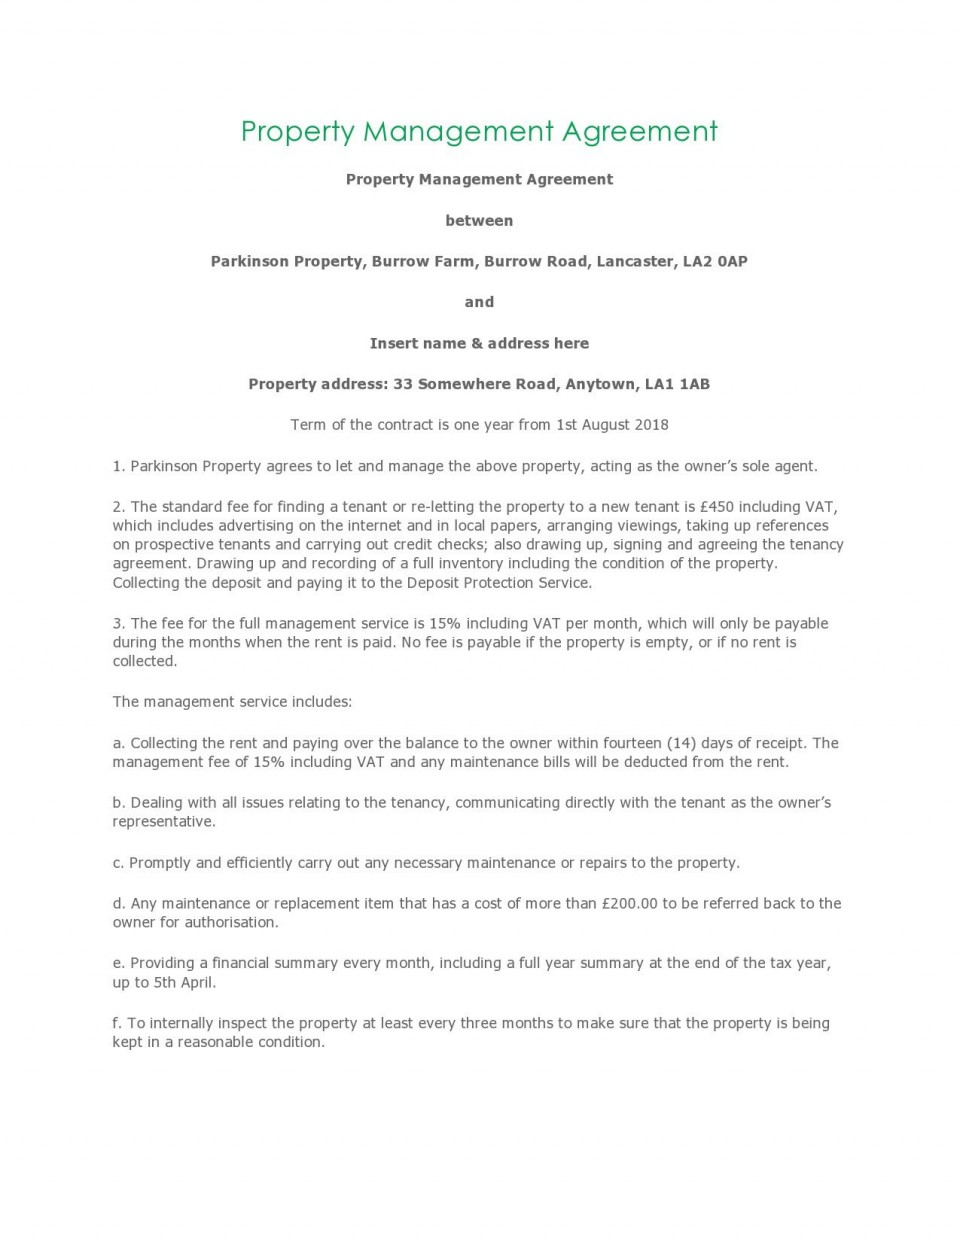 004 Unusual Property Management Contract Template Free High Resolution  Uk960